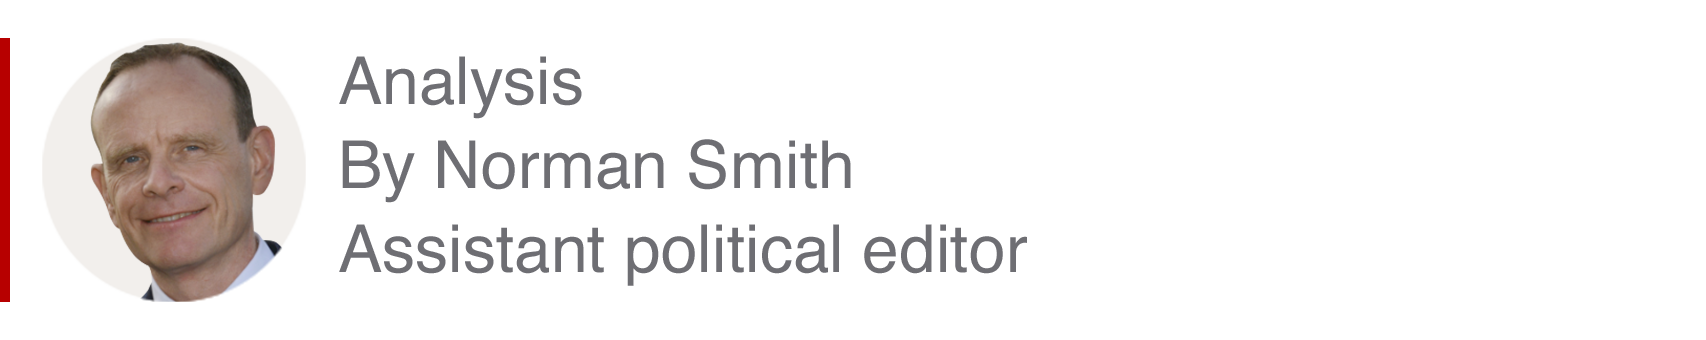 Analysis box by Norman Smith, assistant political editor